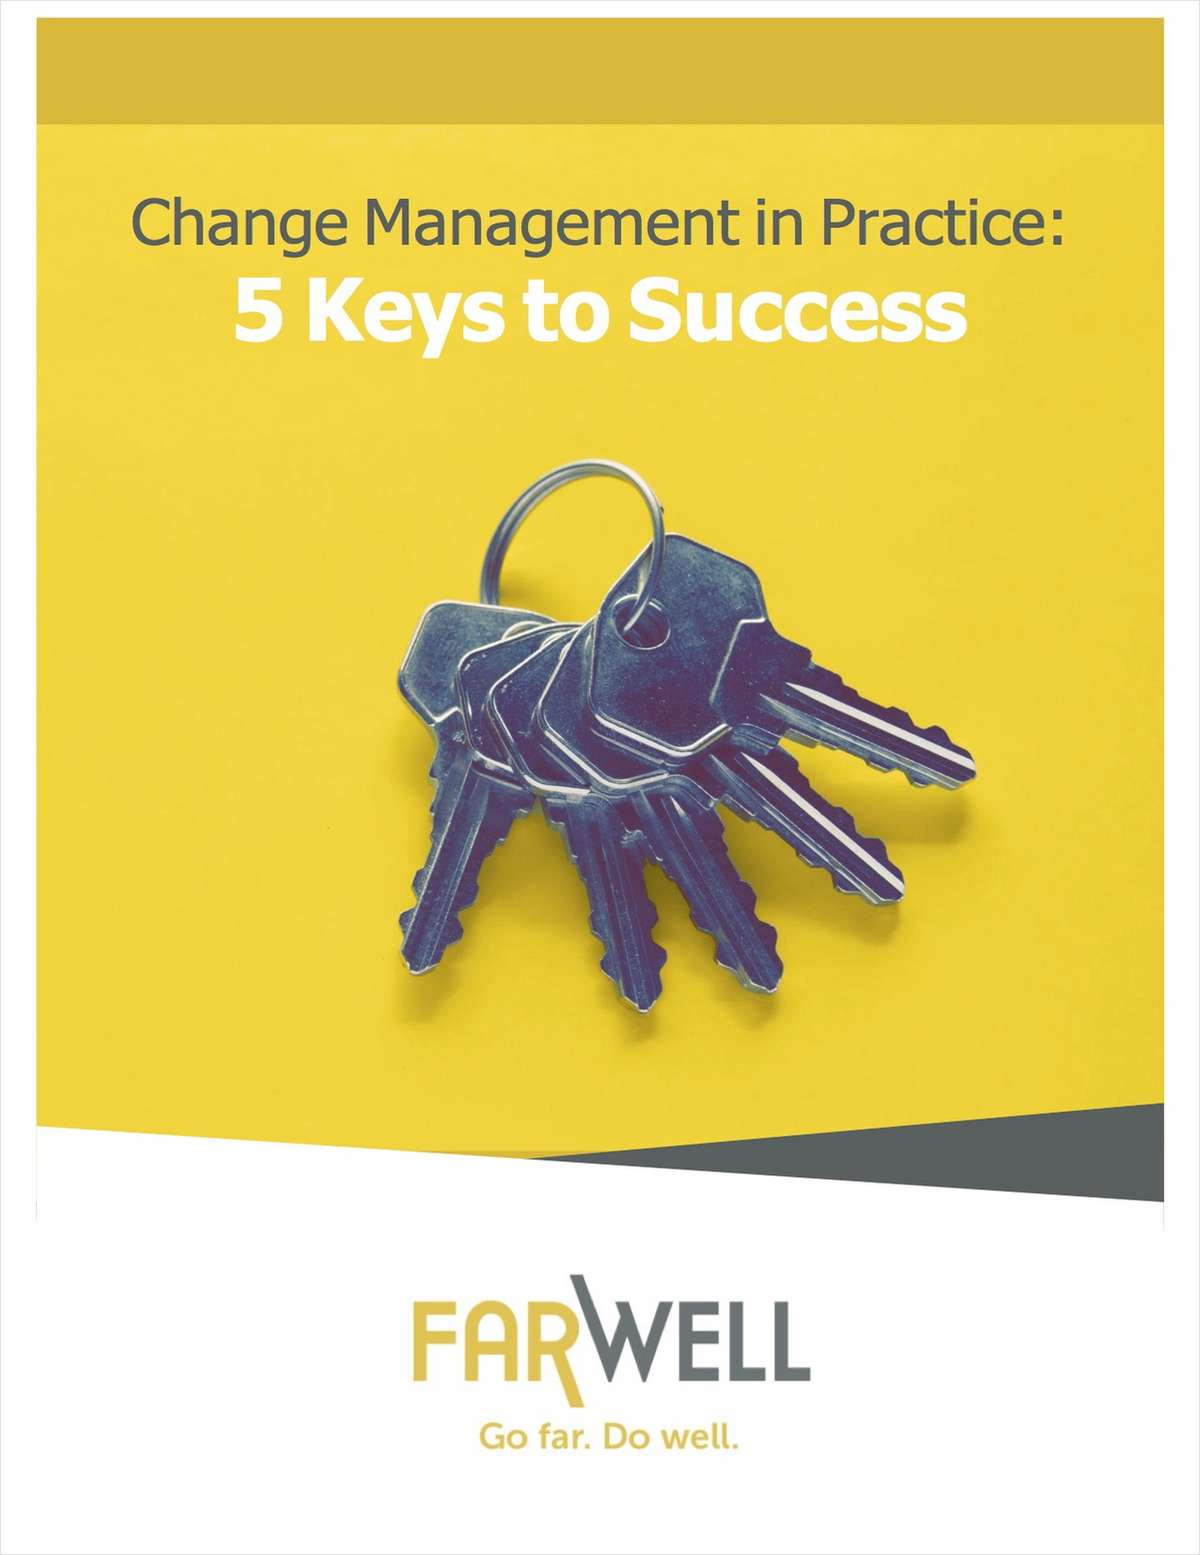 Change Management in Practice - 5 Keys to Success